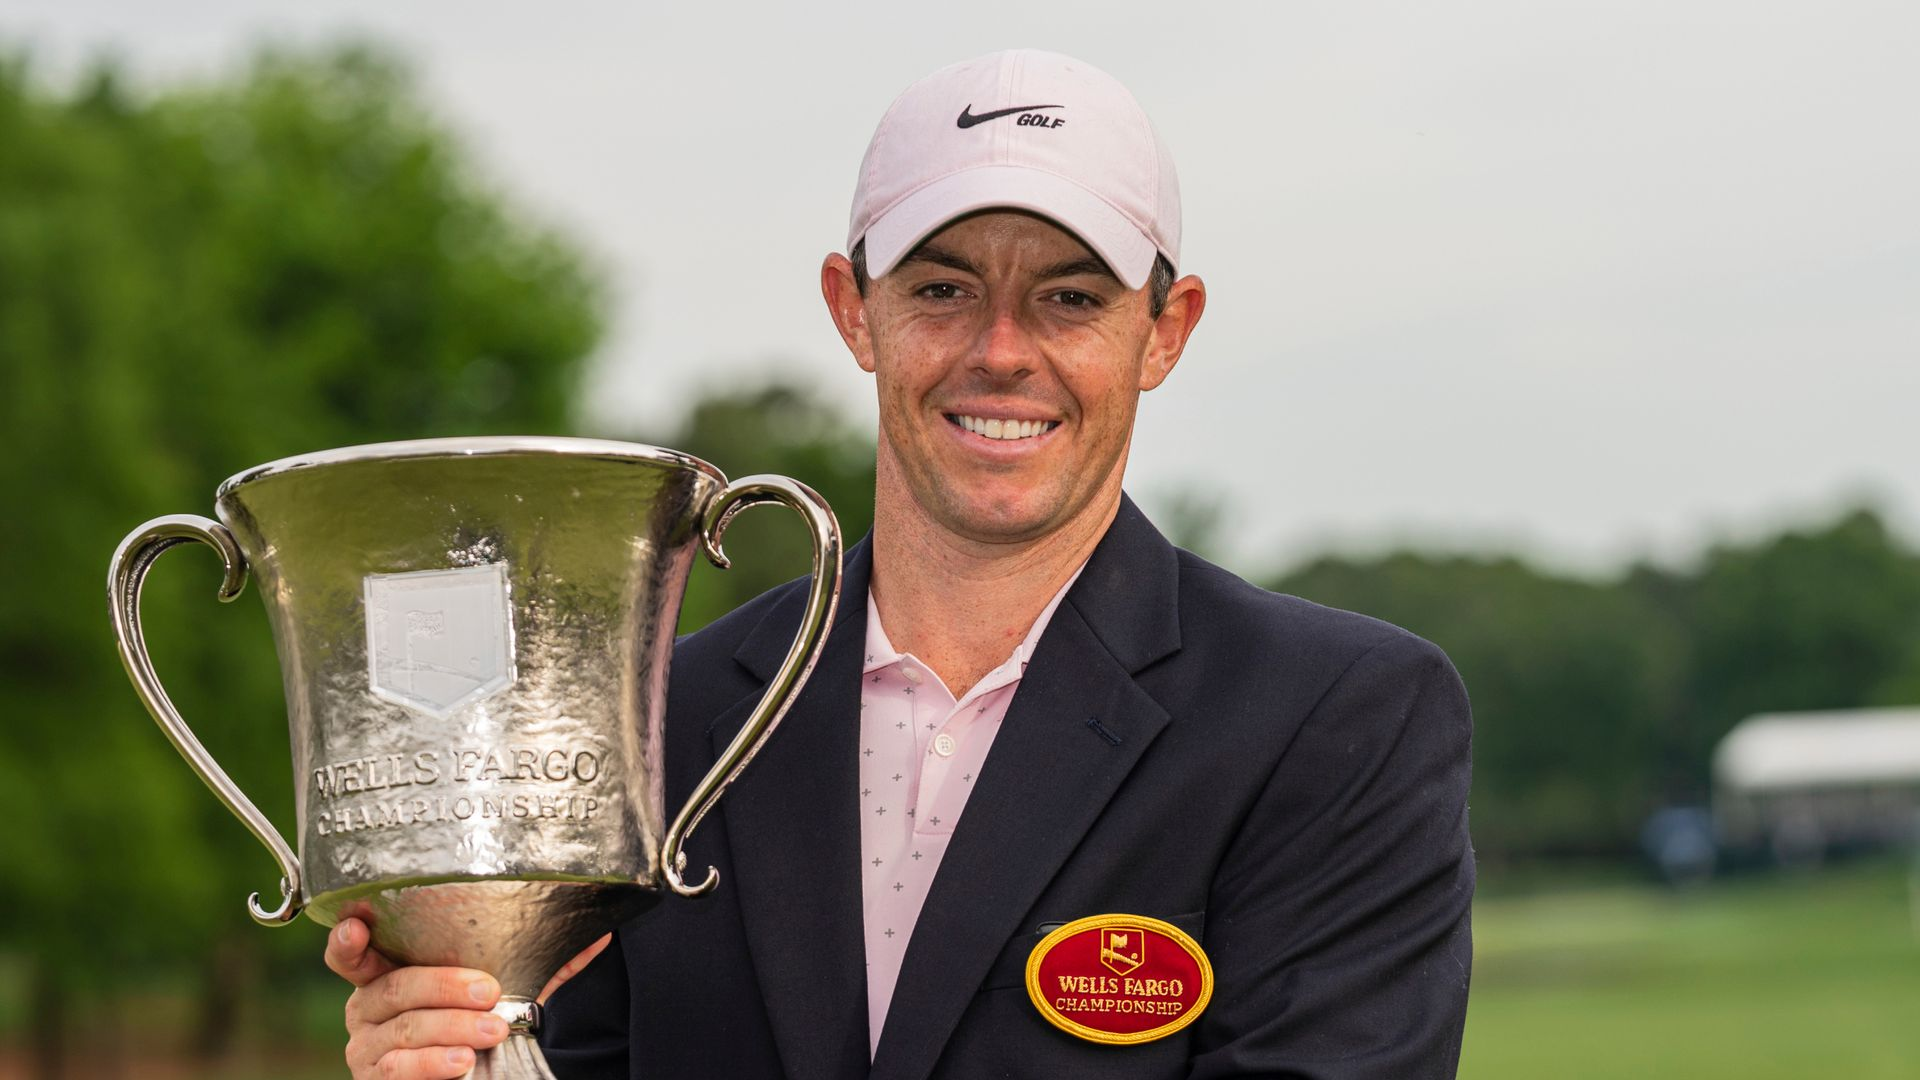 McIlroy almost withdrew due to neck injury